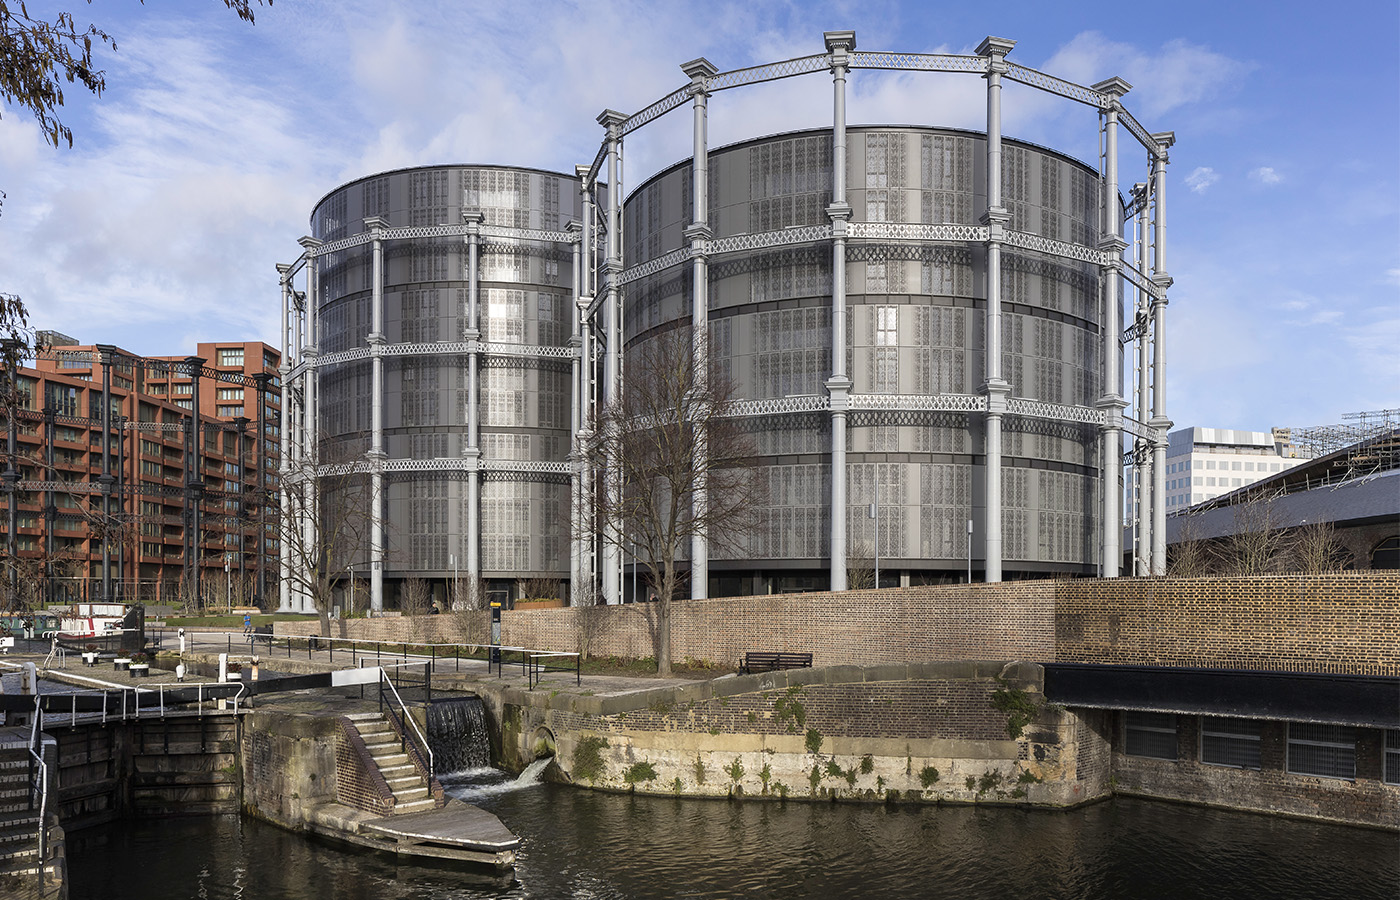 Gasholders London Wilkinsoneyre